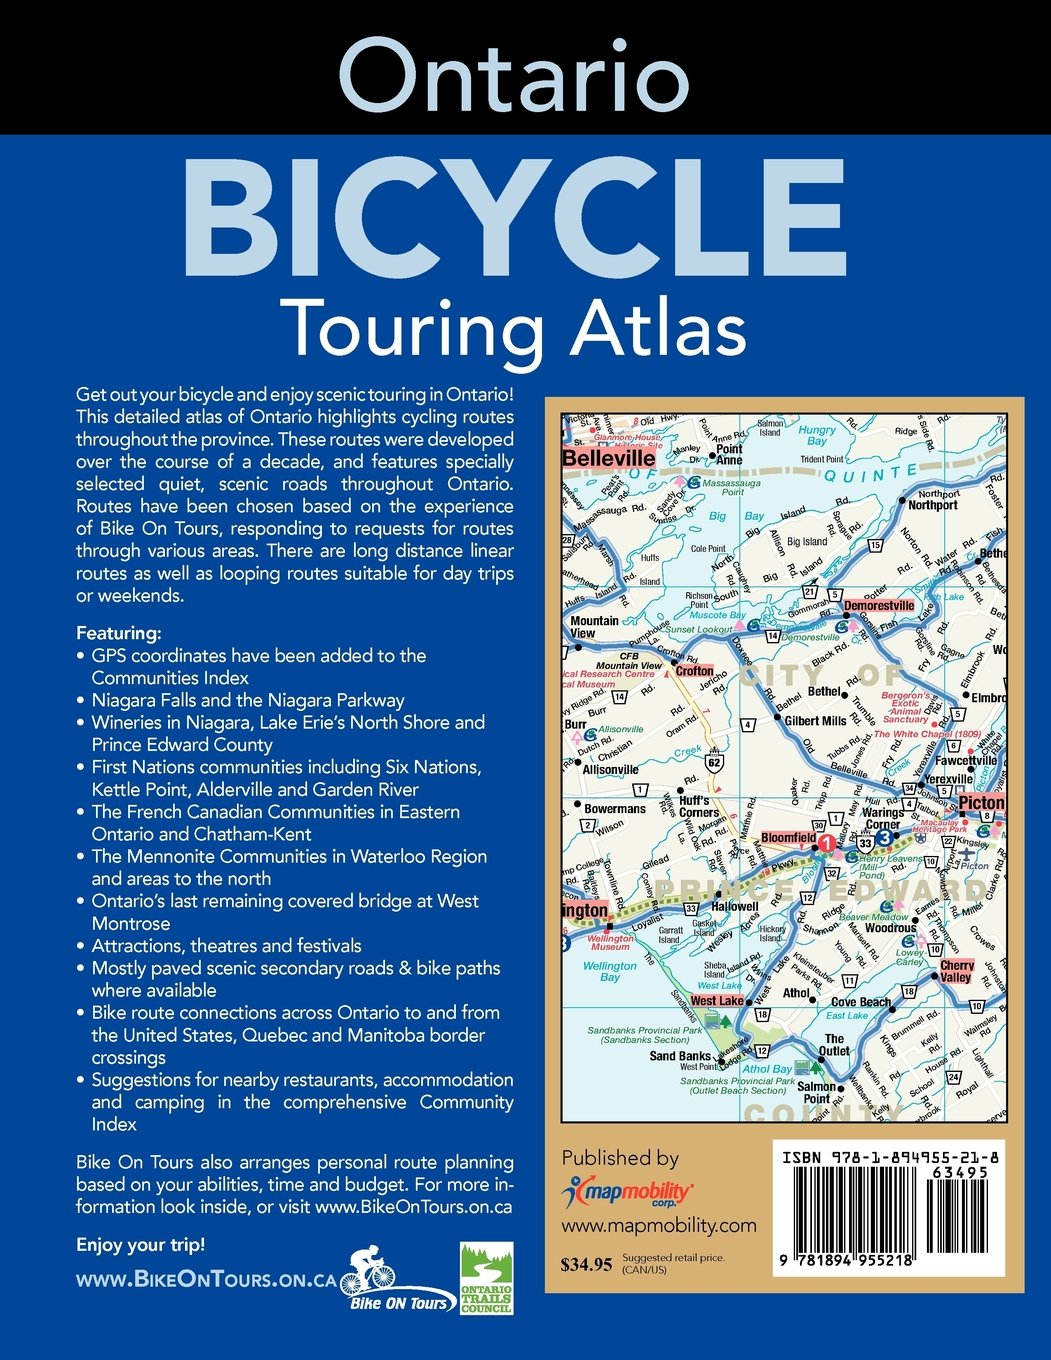 Ontario cycling atlas route master 9781894955218 amazon books fandeluxe Images